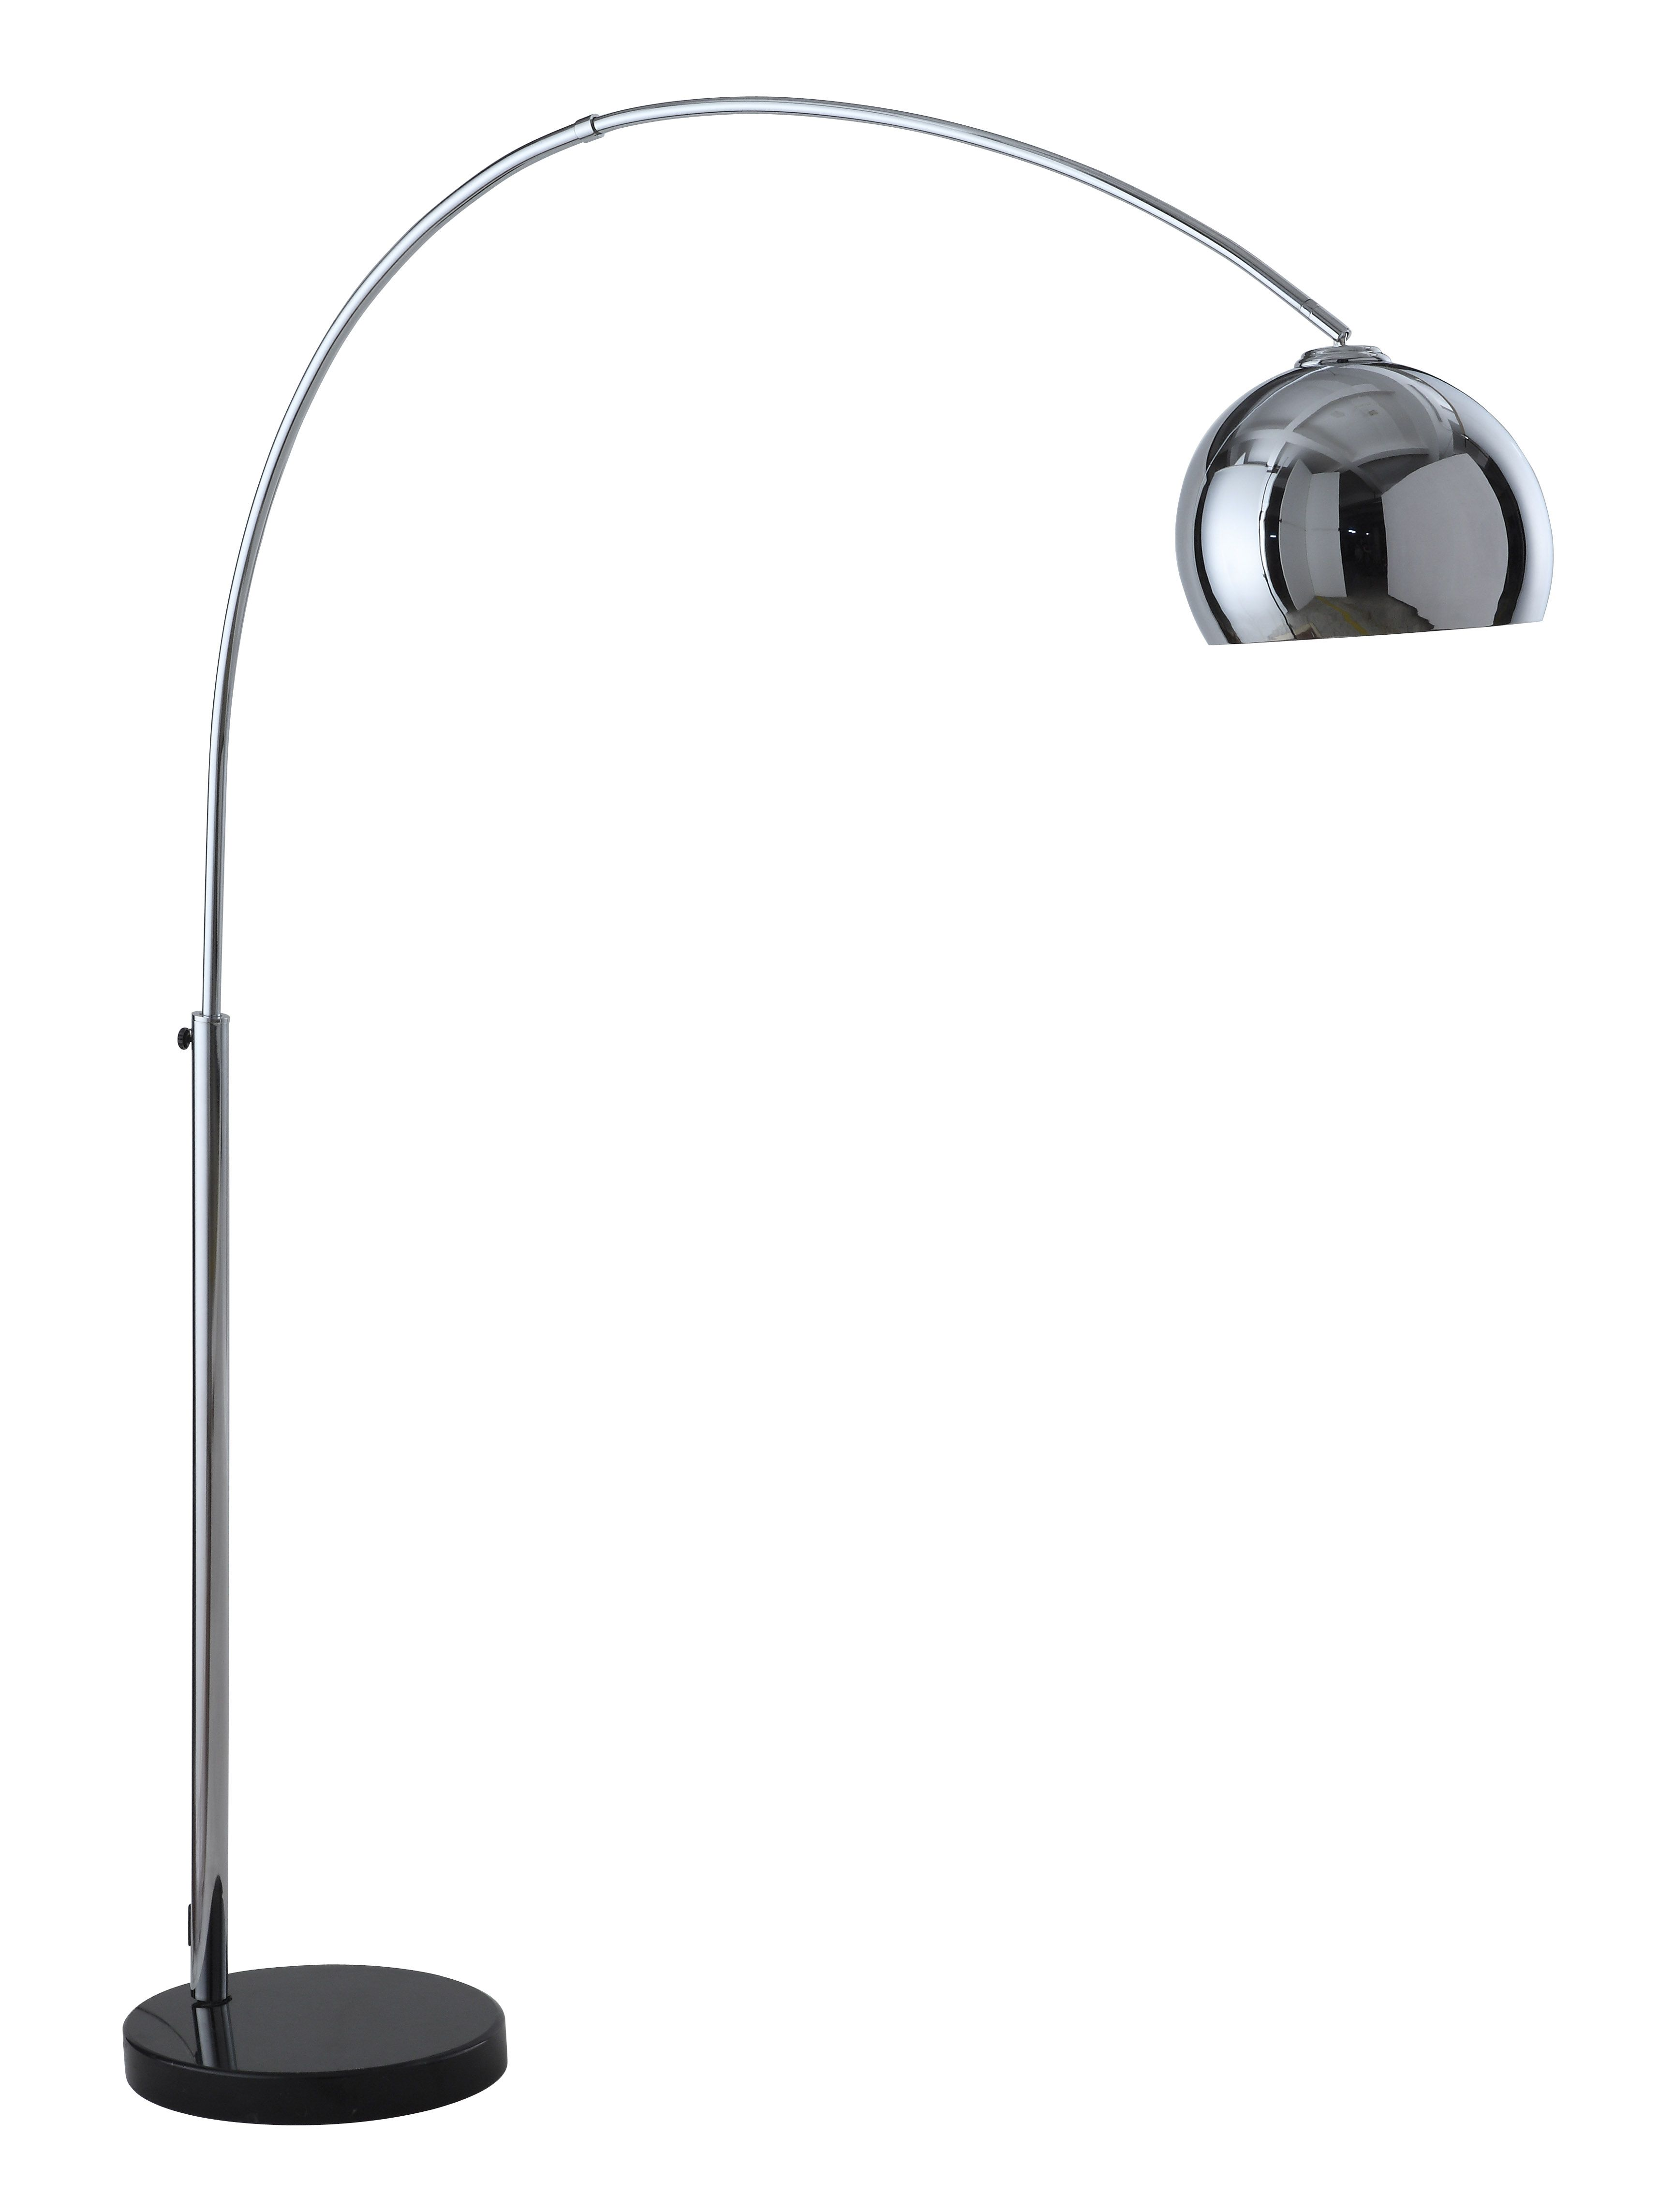 Floor Lamp Bellina Arc (Qty: 1) Has Been Successfully Added To Your Cart.